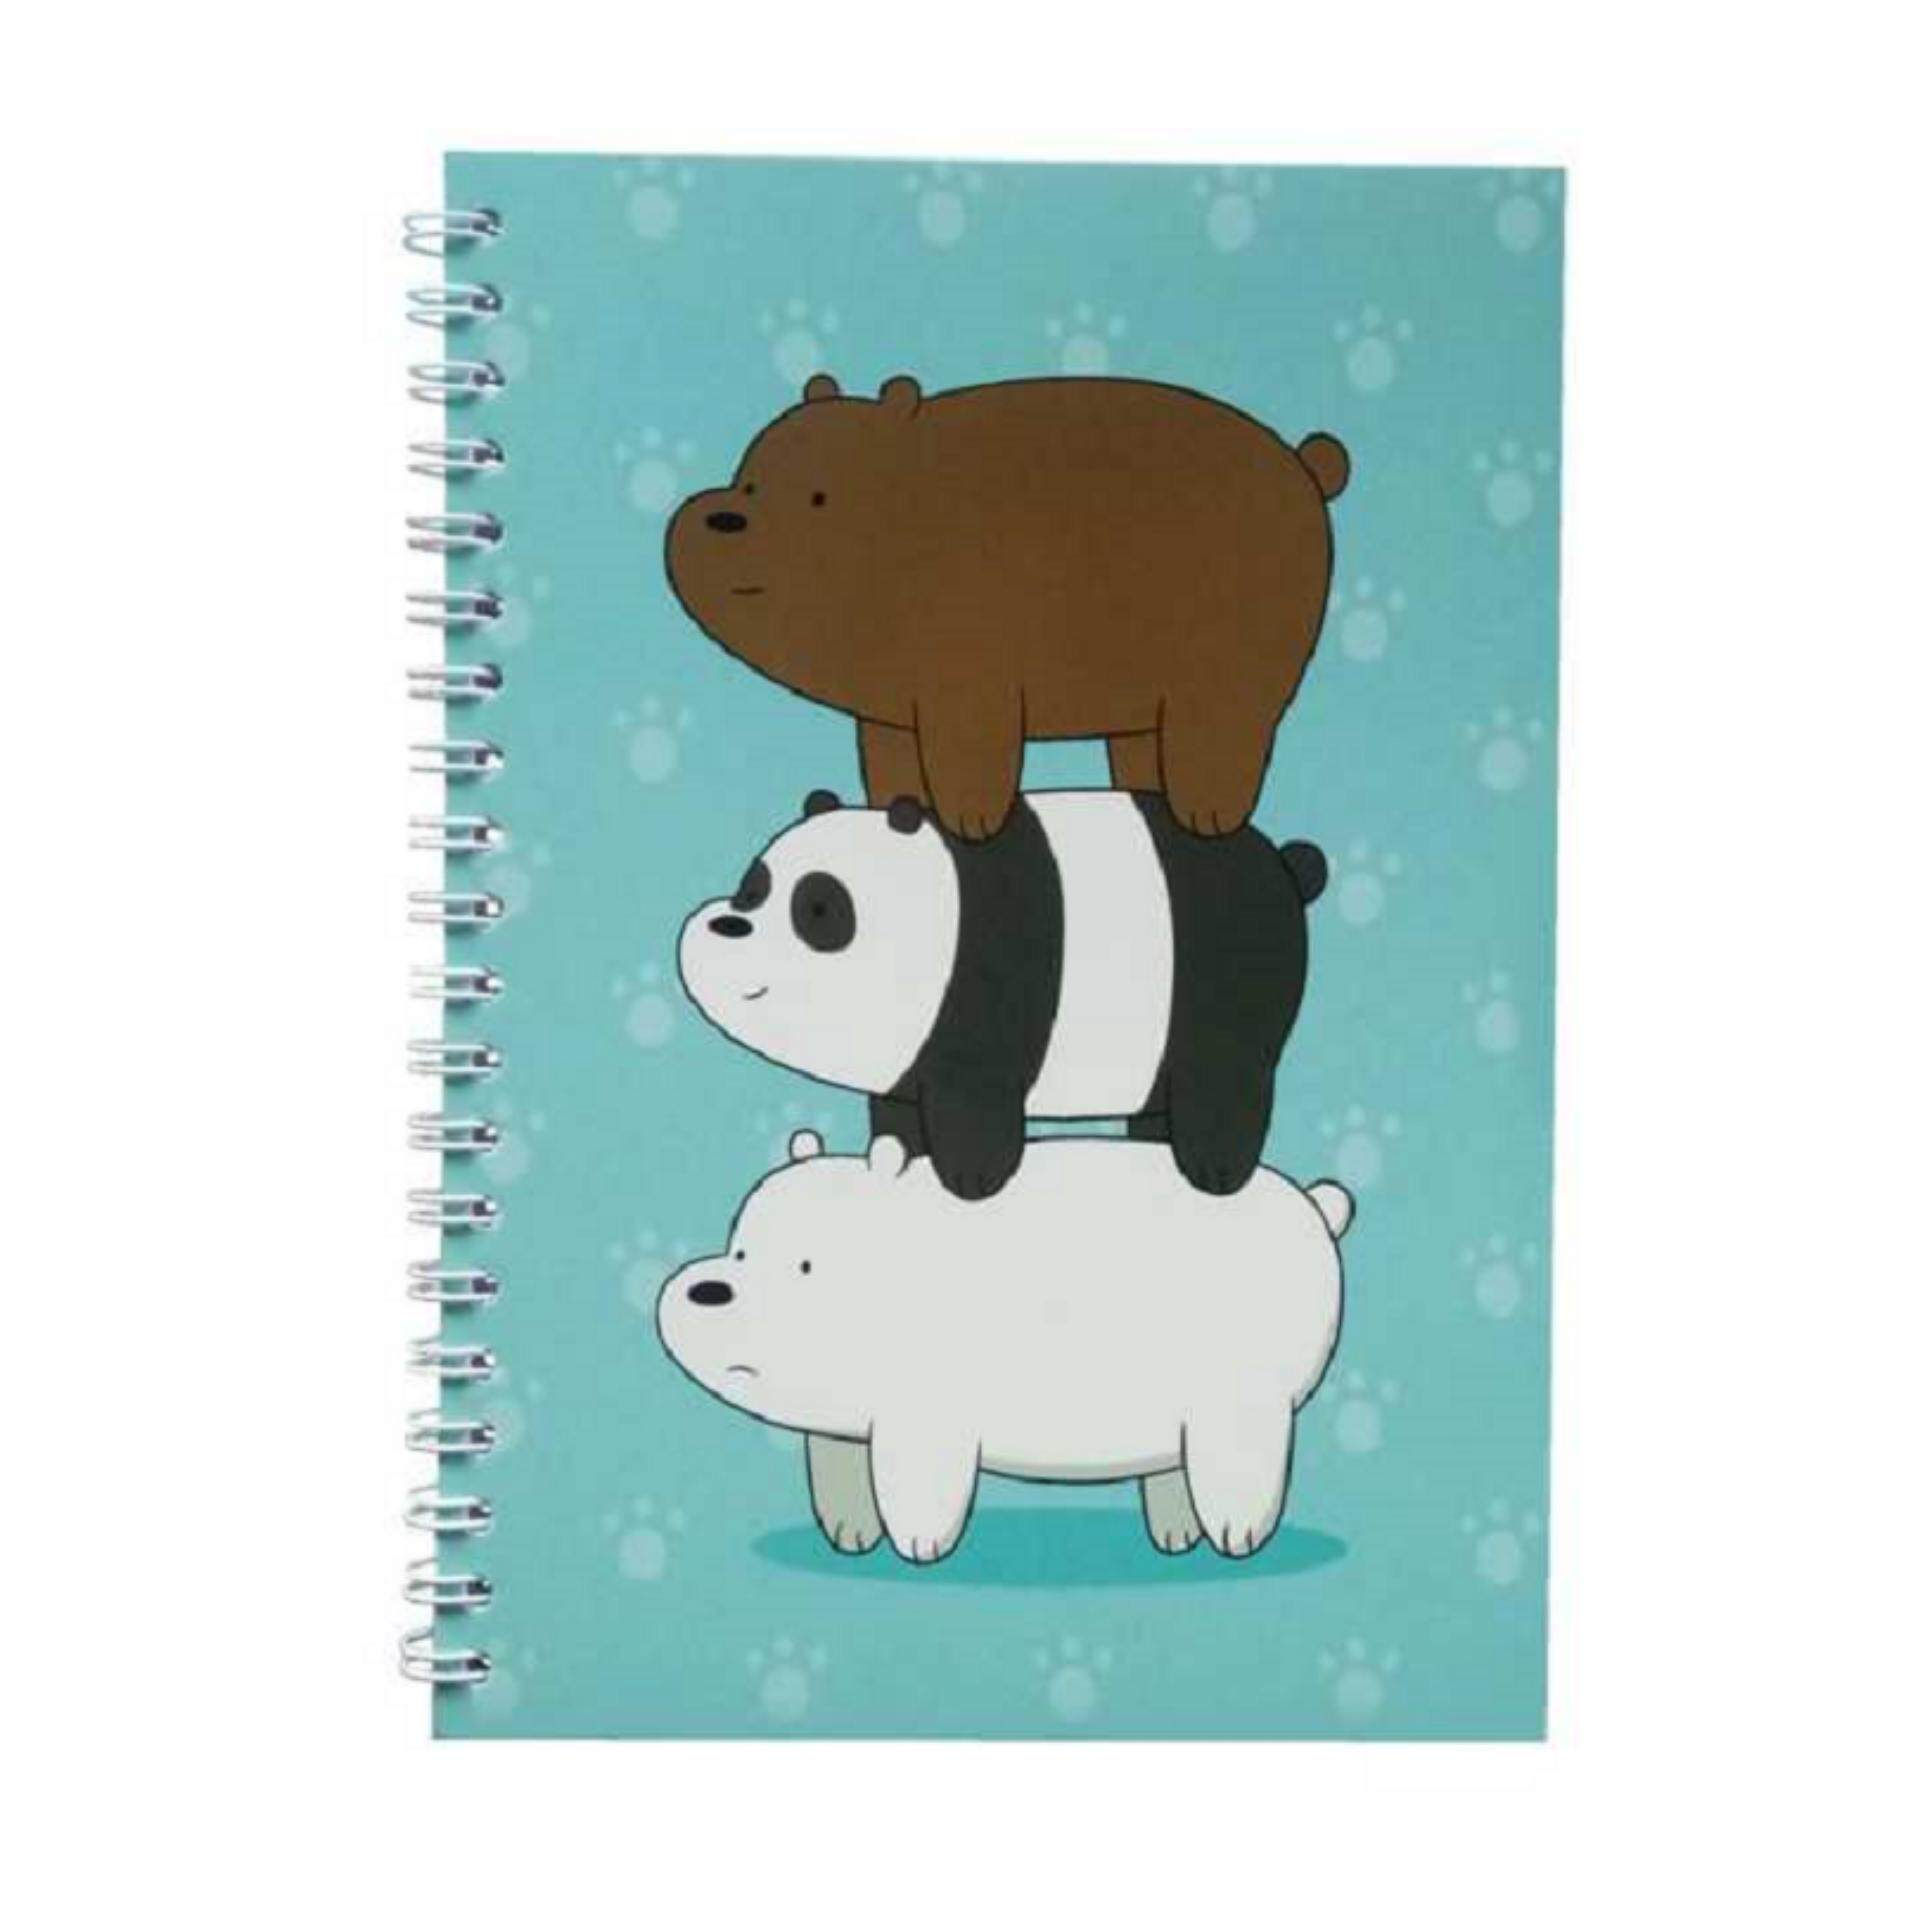 We Bare Bears Notebook - Turquoise Colour